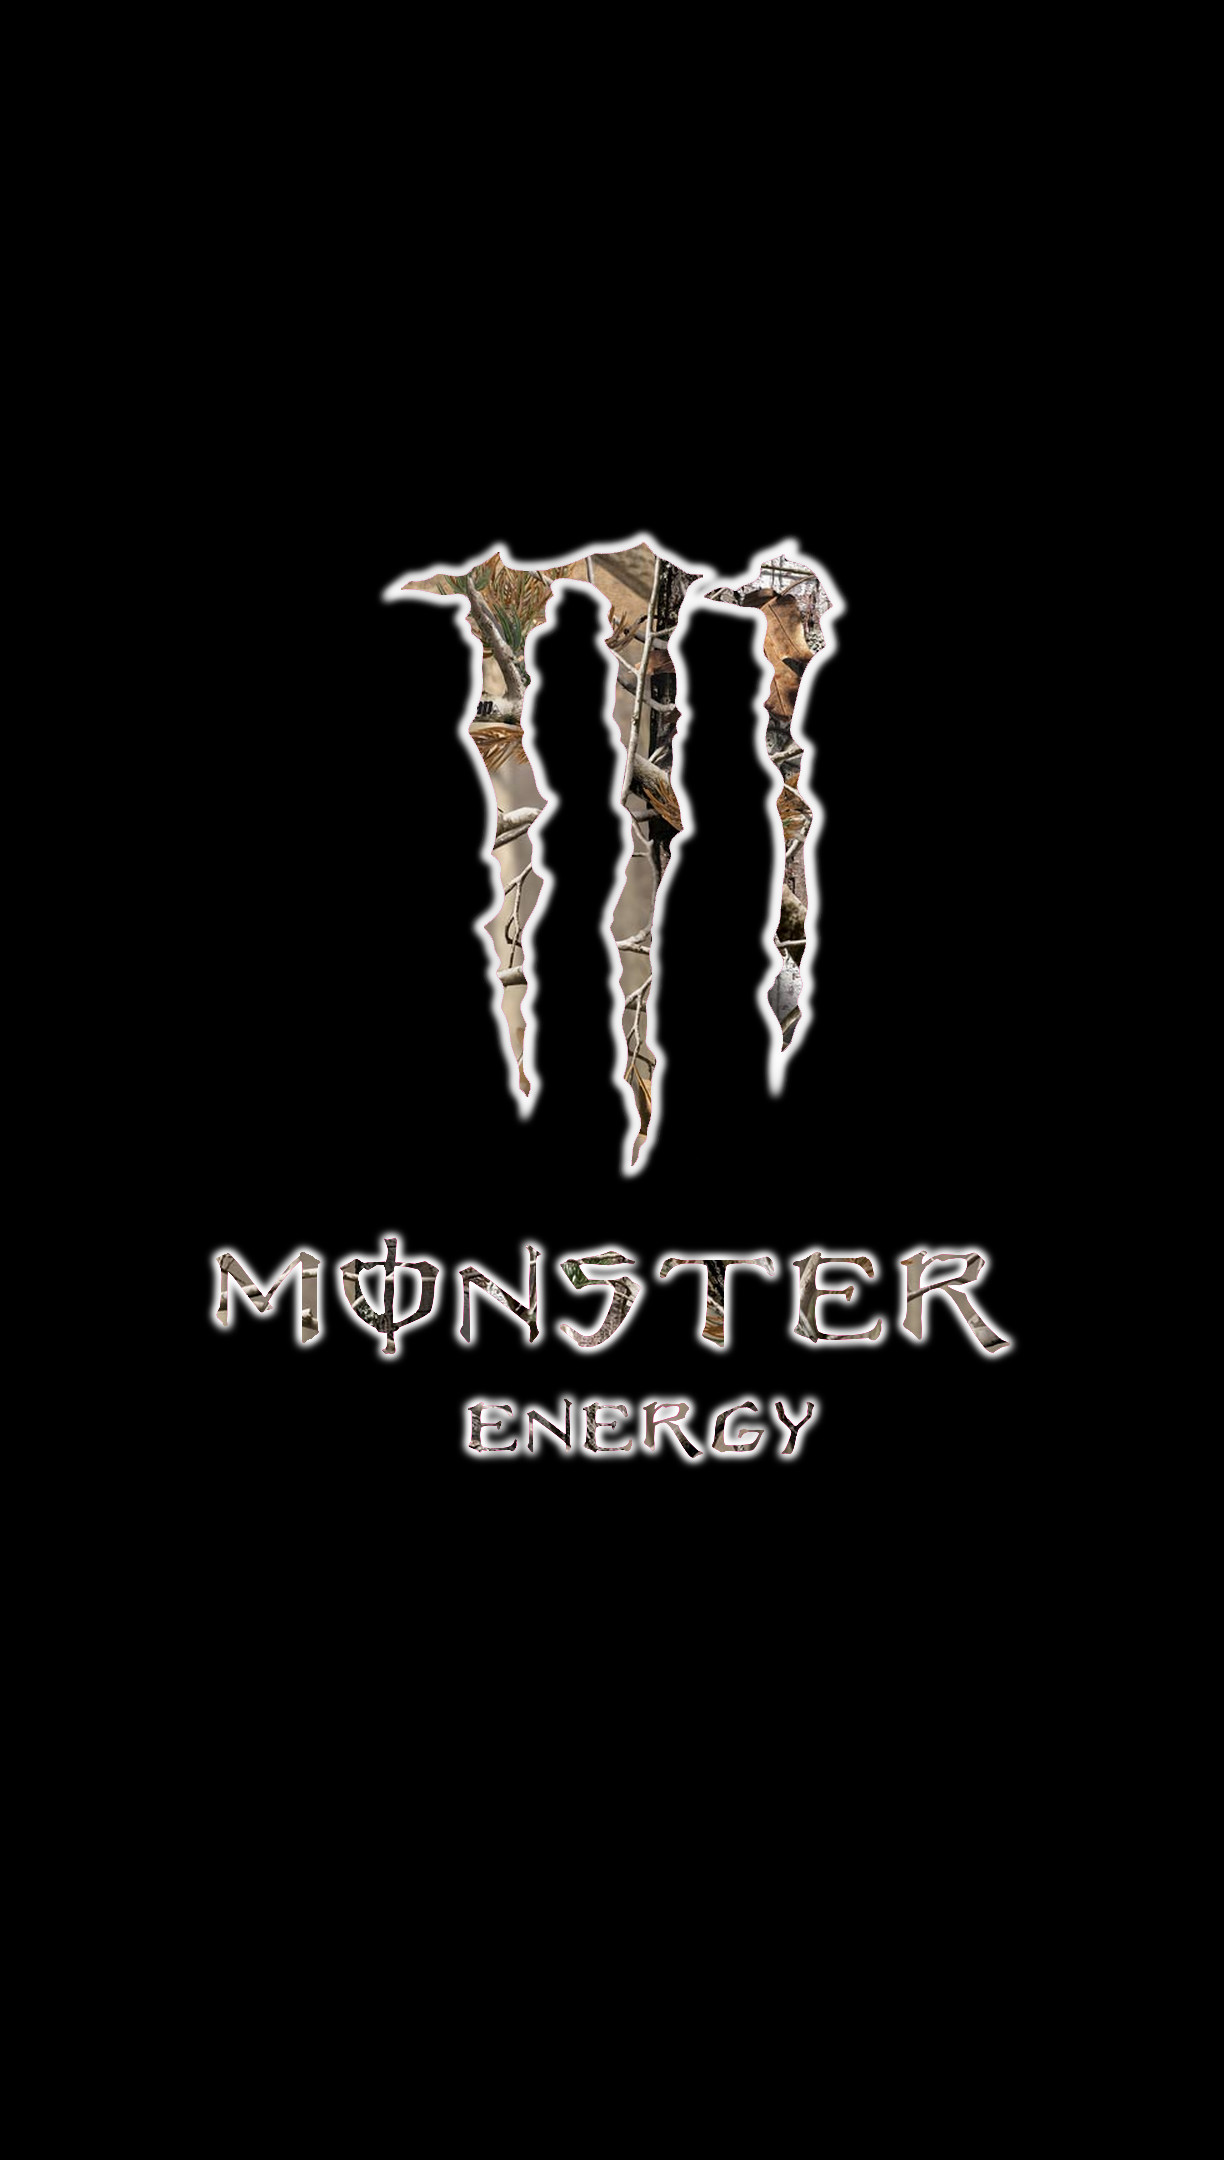 Res: 1224x2160, ... Monster Energy logo with Realtree AP HD scheme by karijuana